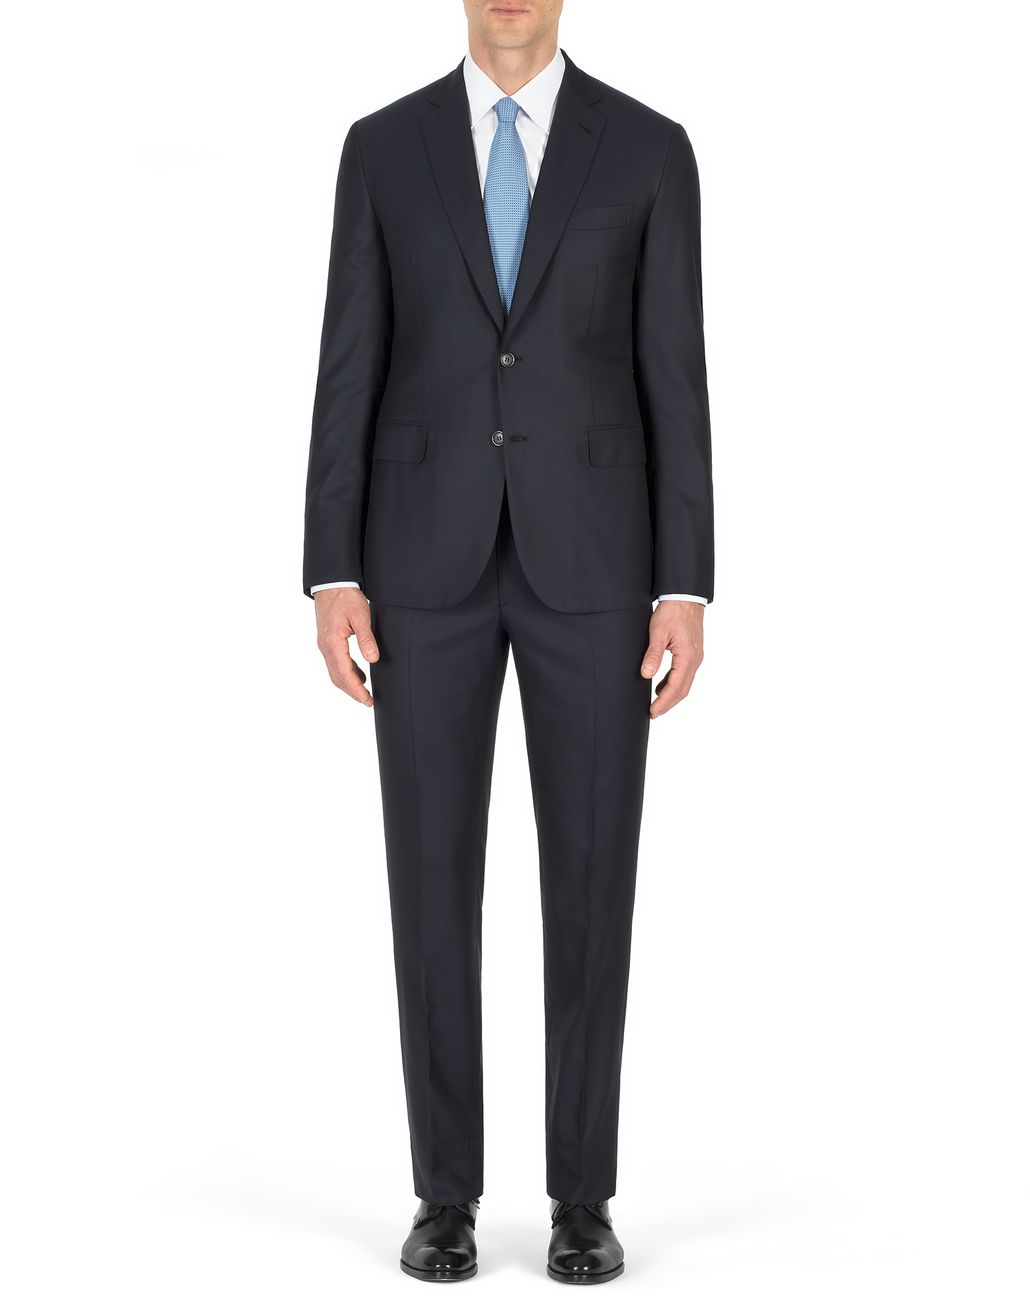 BRIONI 'Essential' Navy Blue Madison Suit Suits & Jackets Man r